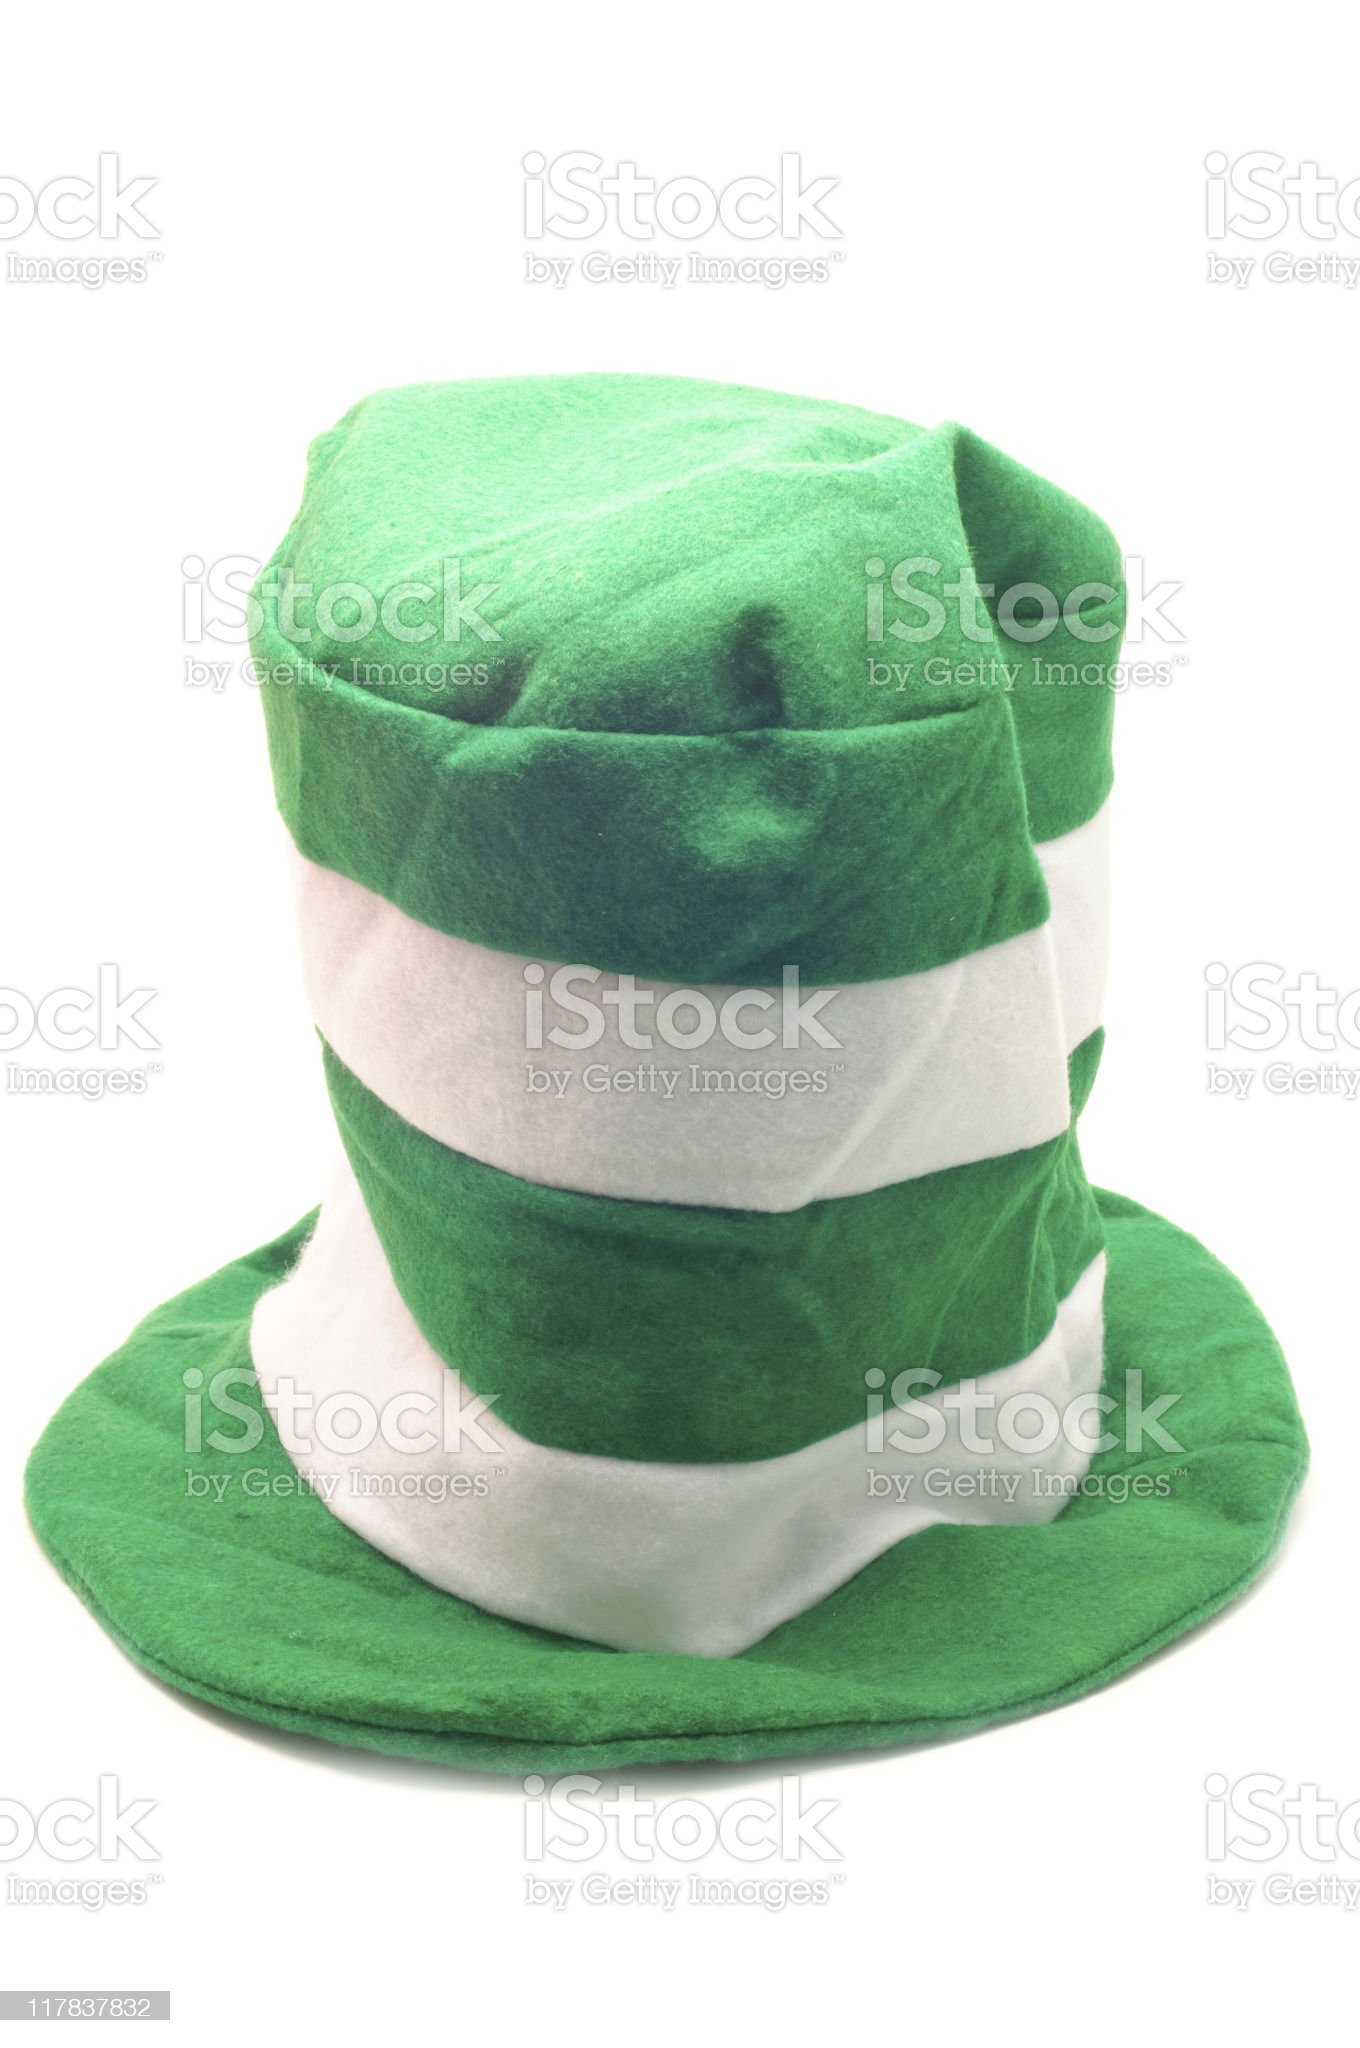 Green Striped Hat royalty-free stock photo